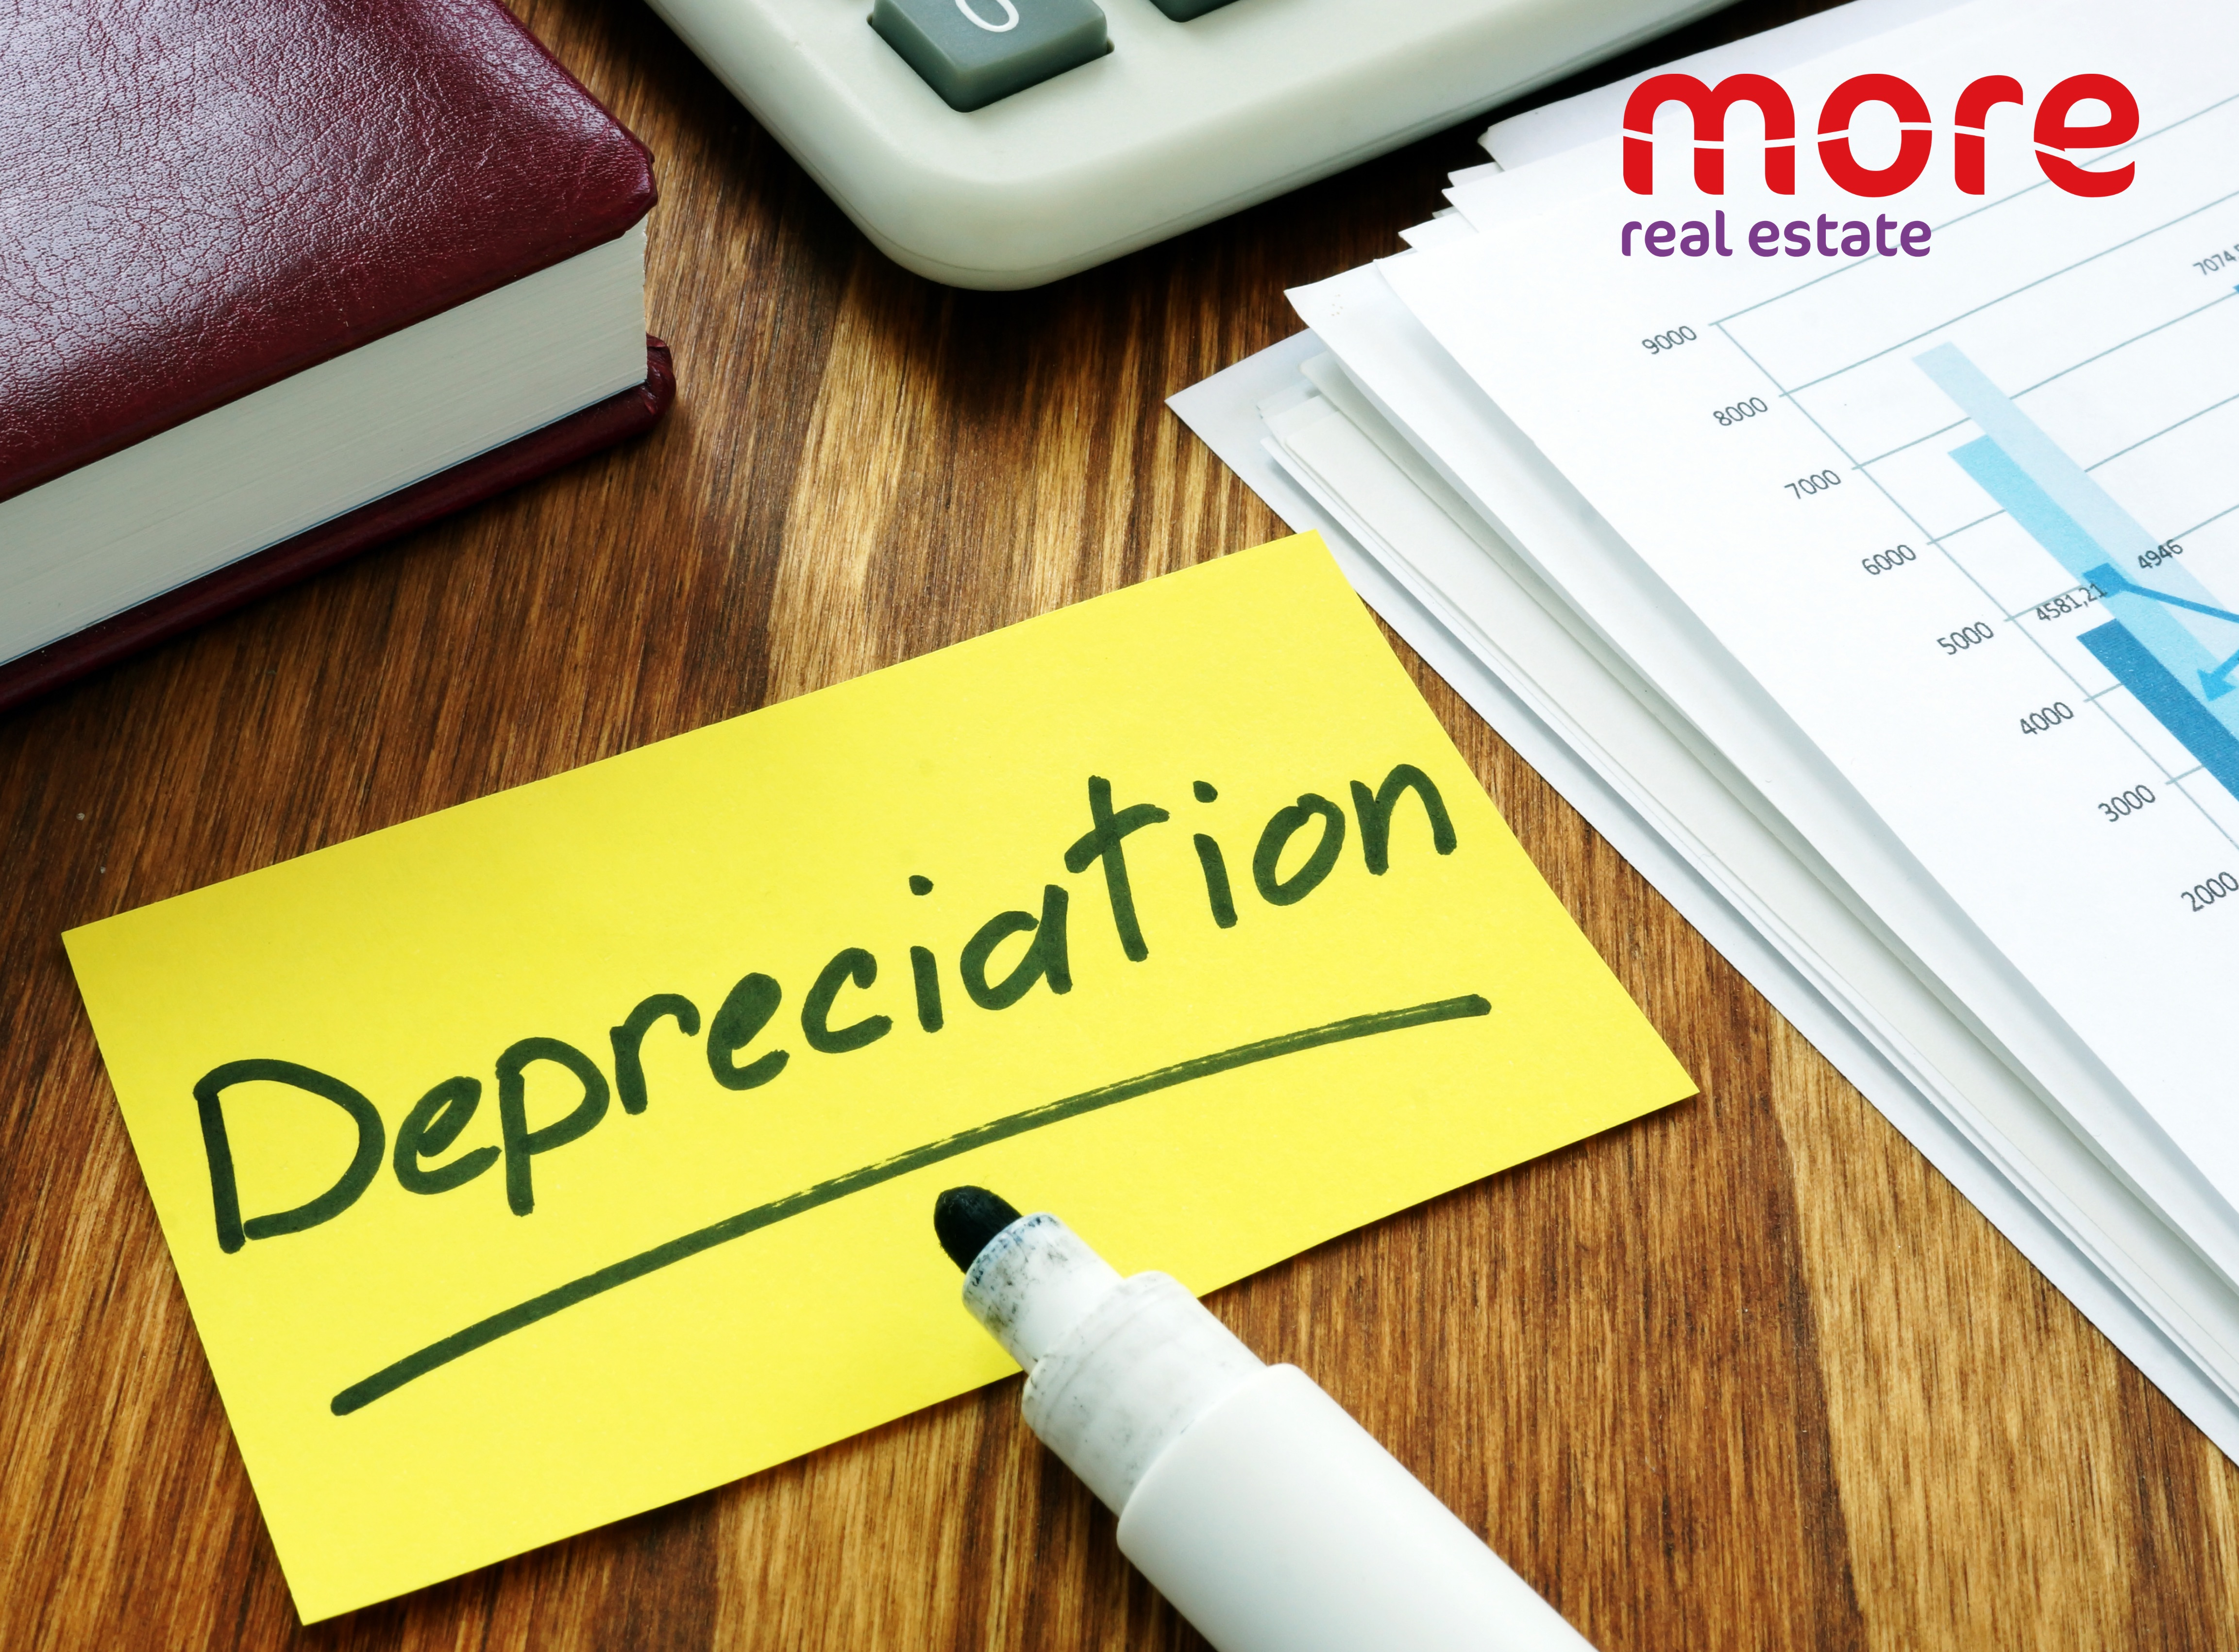 Depreciation schedules - do I need one?